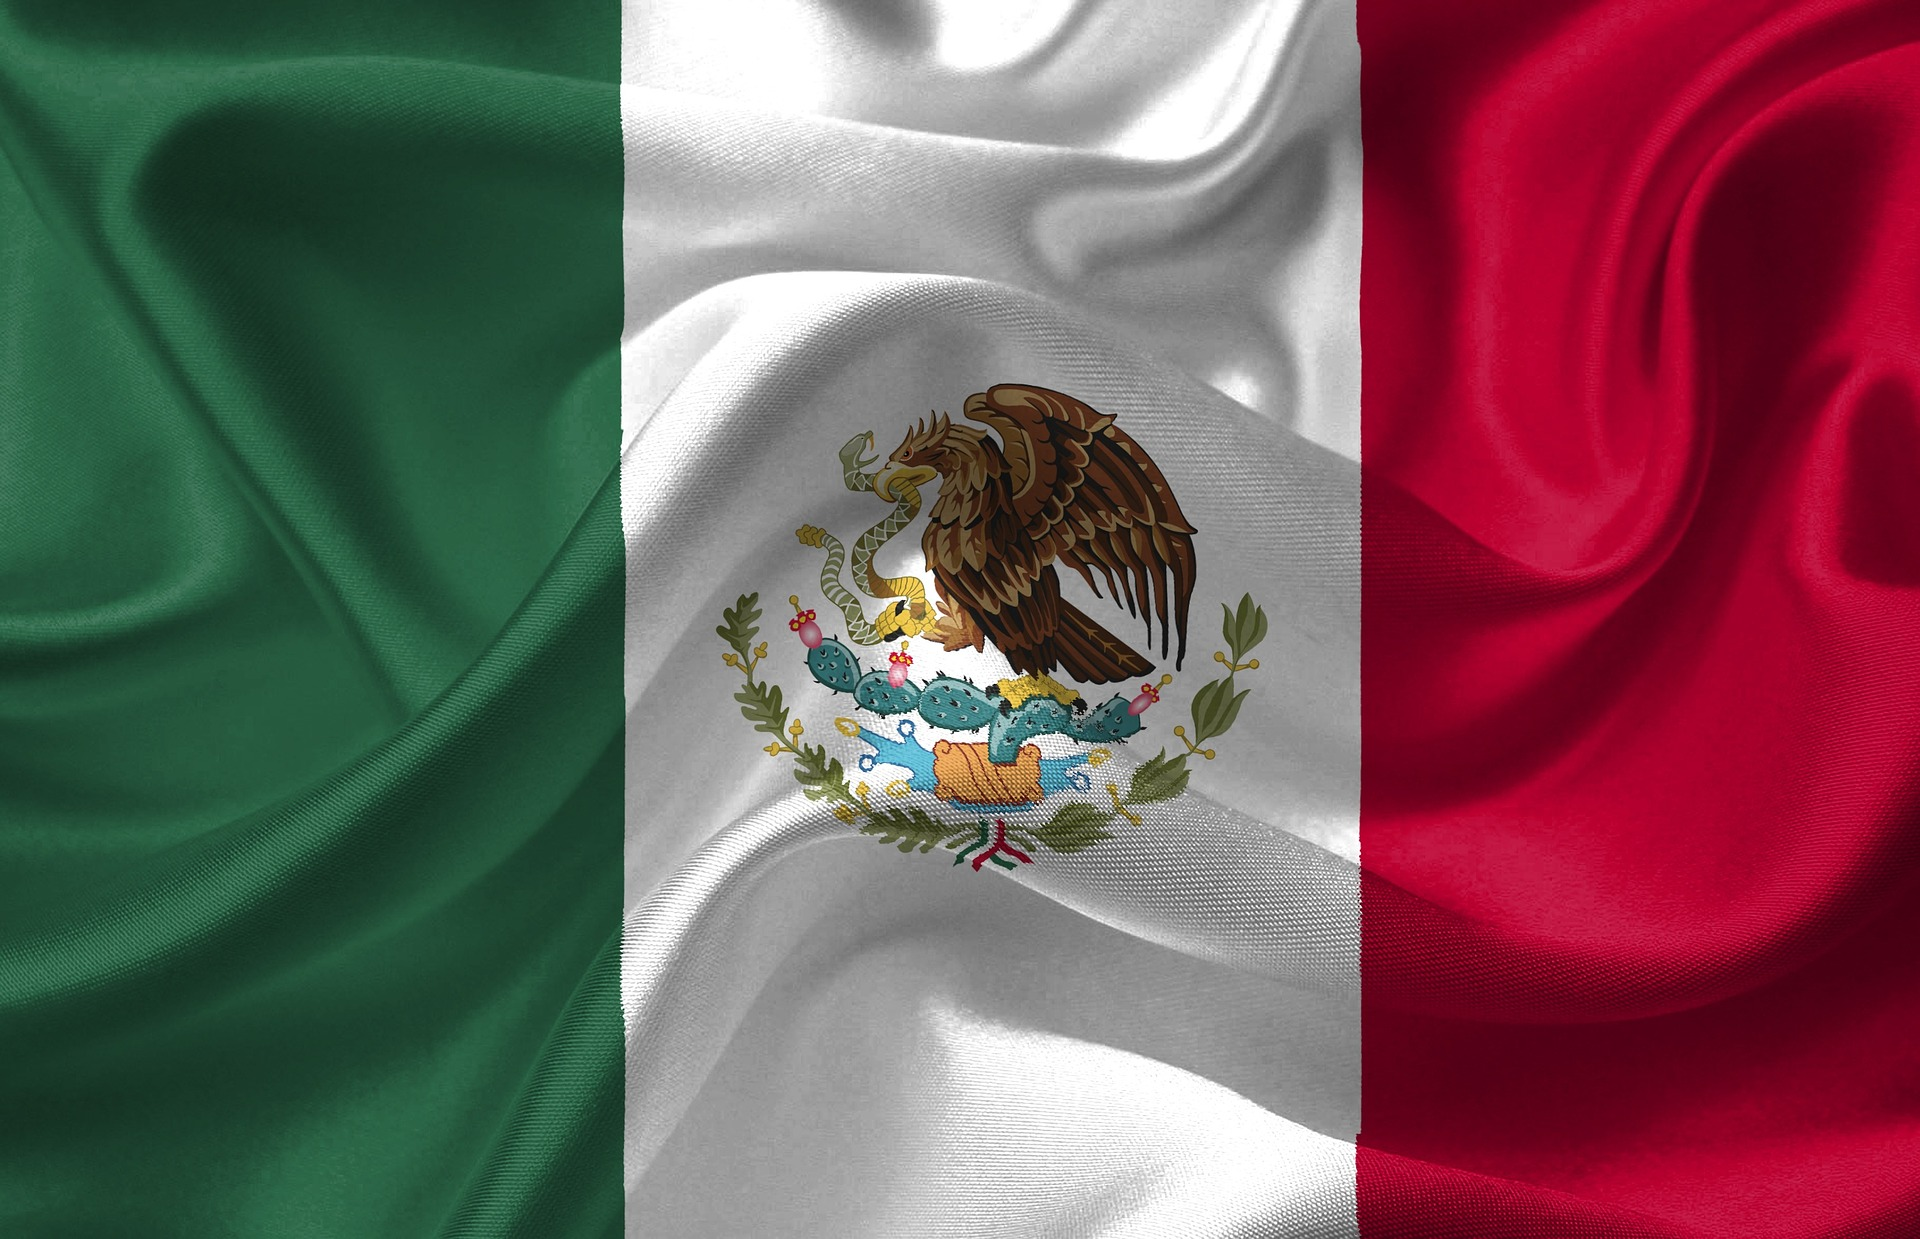 Cobro Digital in Mexico: (Not) Everyone is Ready, but Here It Comes